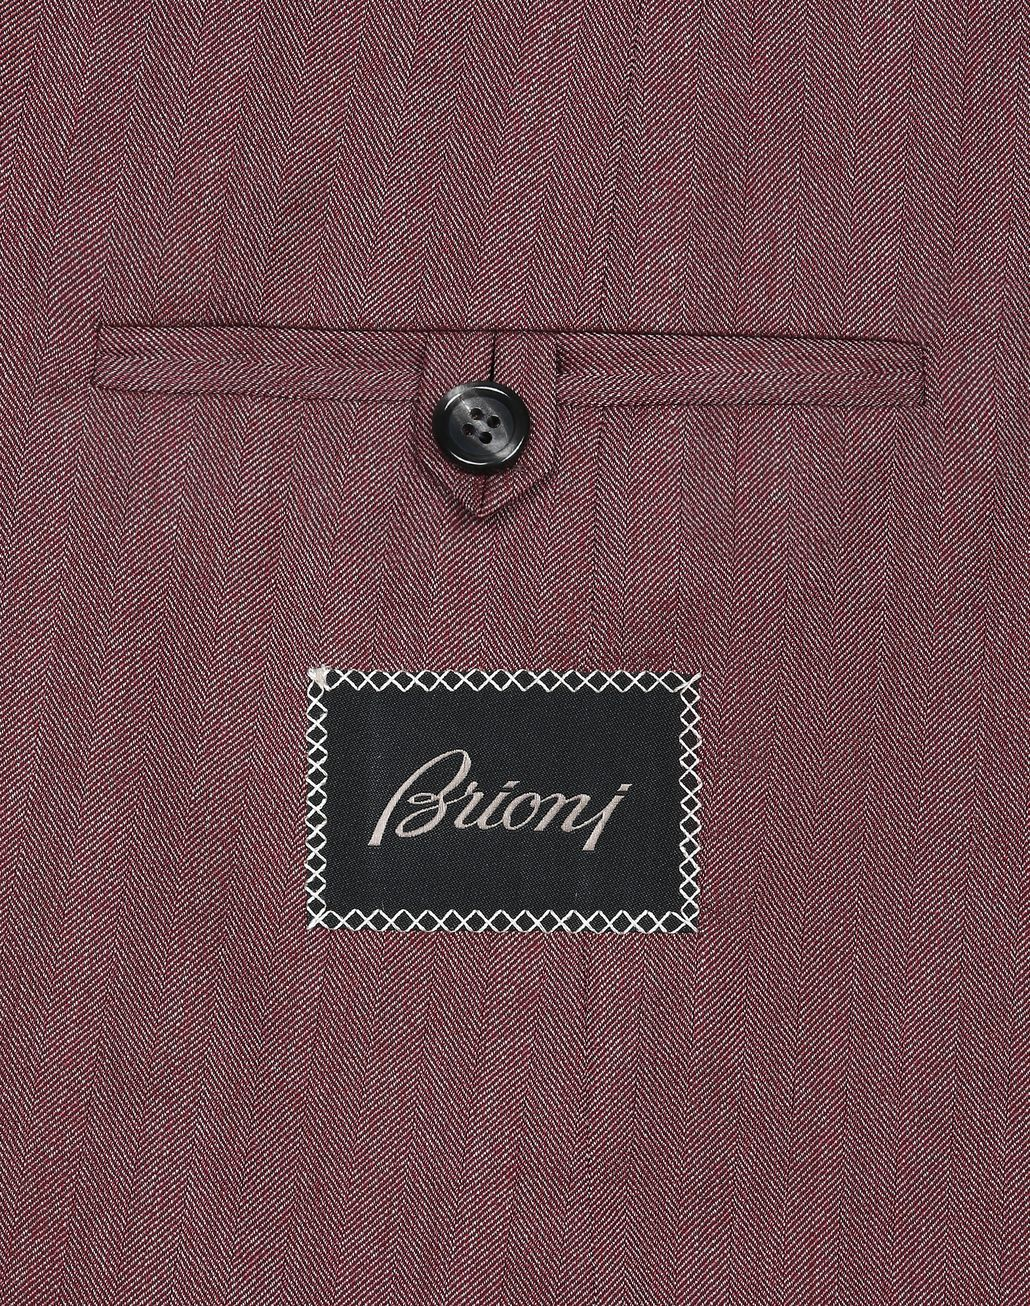 BRIONI Veste Plume à chevrons bordeaux Suits & Jackets Homme a